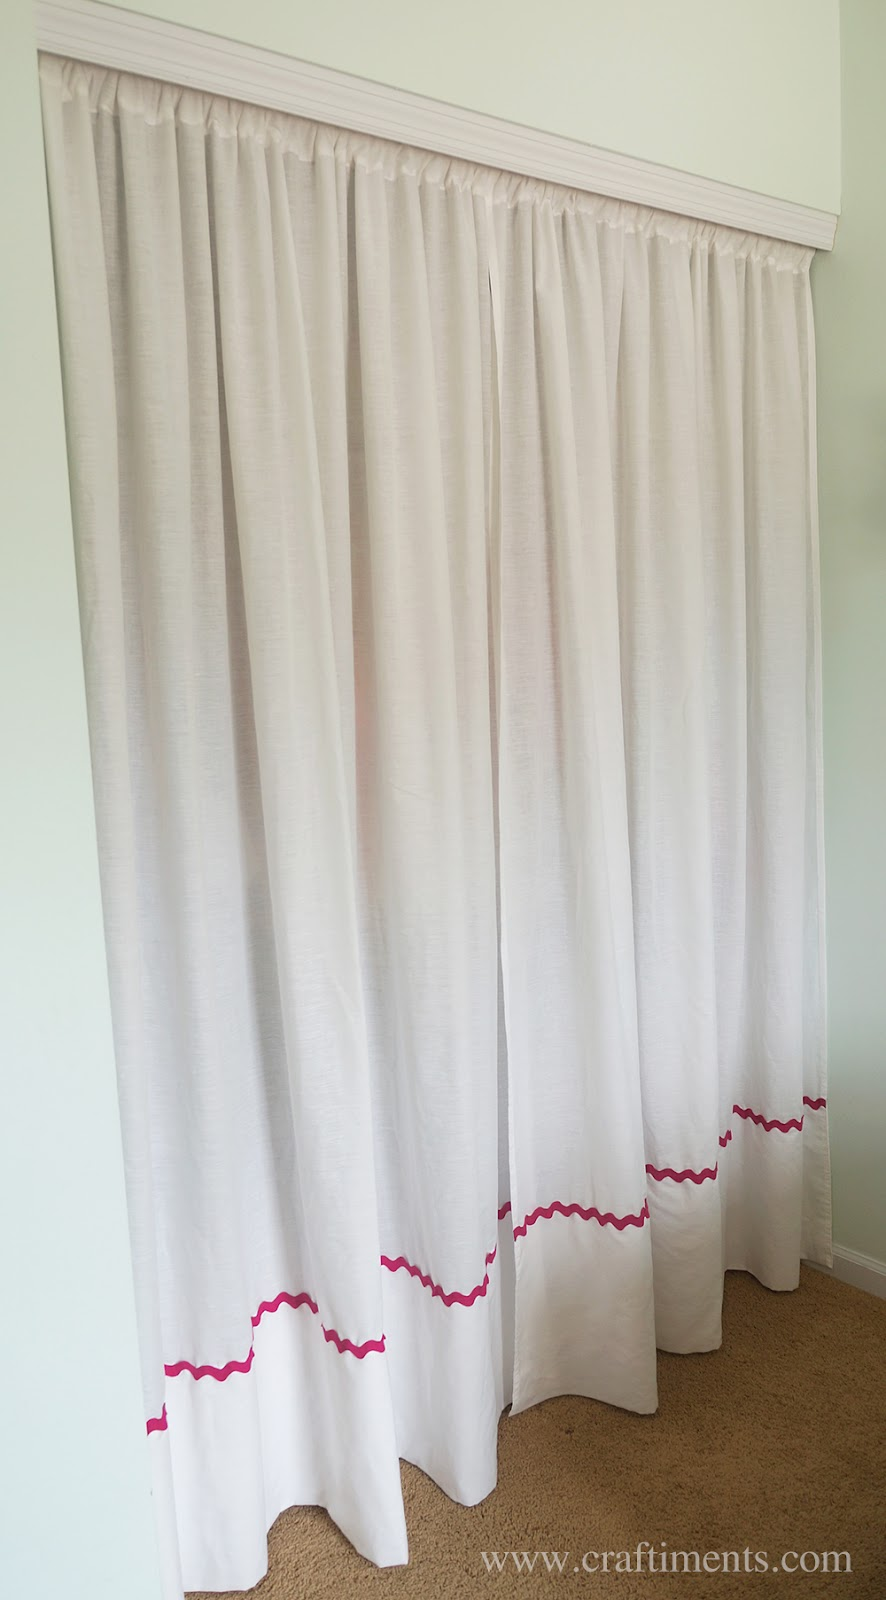 Replace closet doors with curtains sewn from bed sheets.